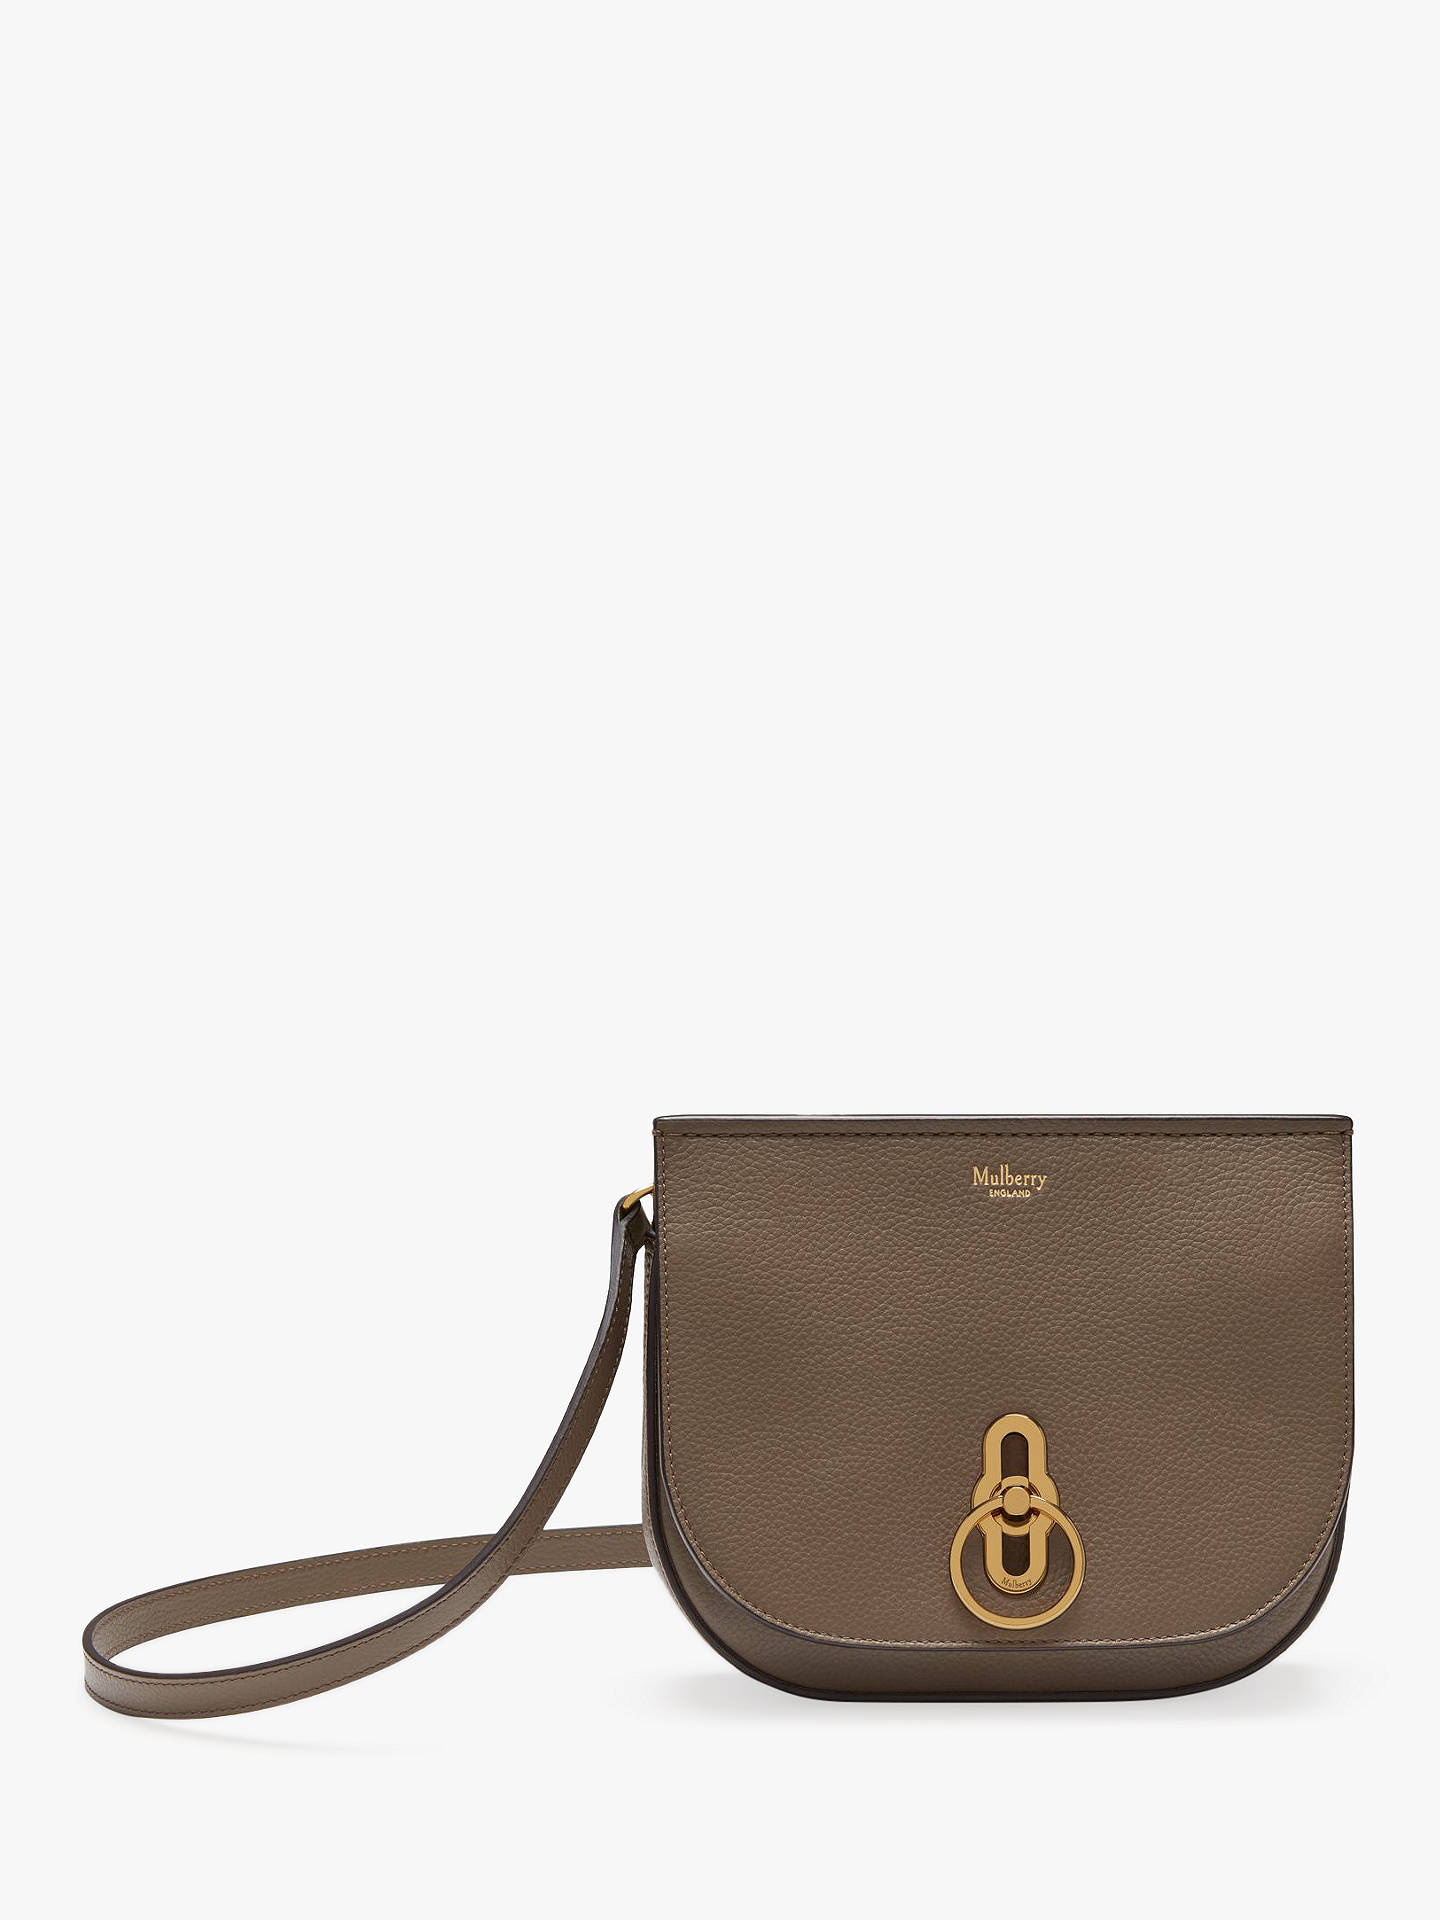 Mulberry Amberley Small Classic Grain Leather Hobo Bag at John Lewis ... 62f63fcefa21a